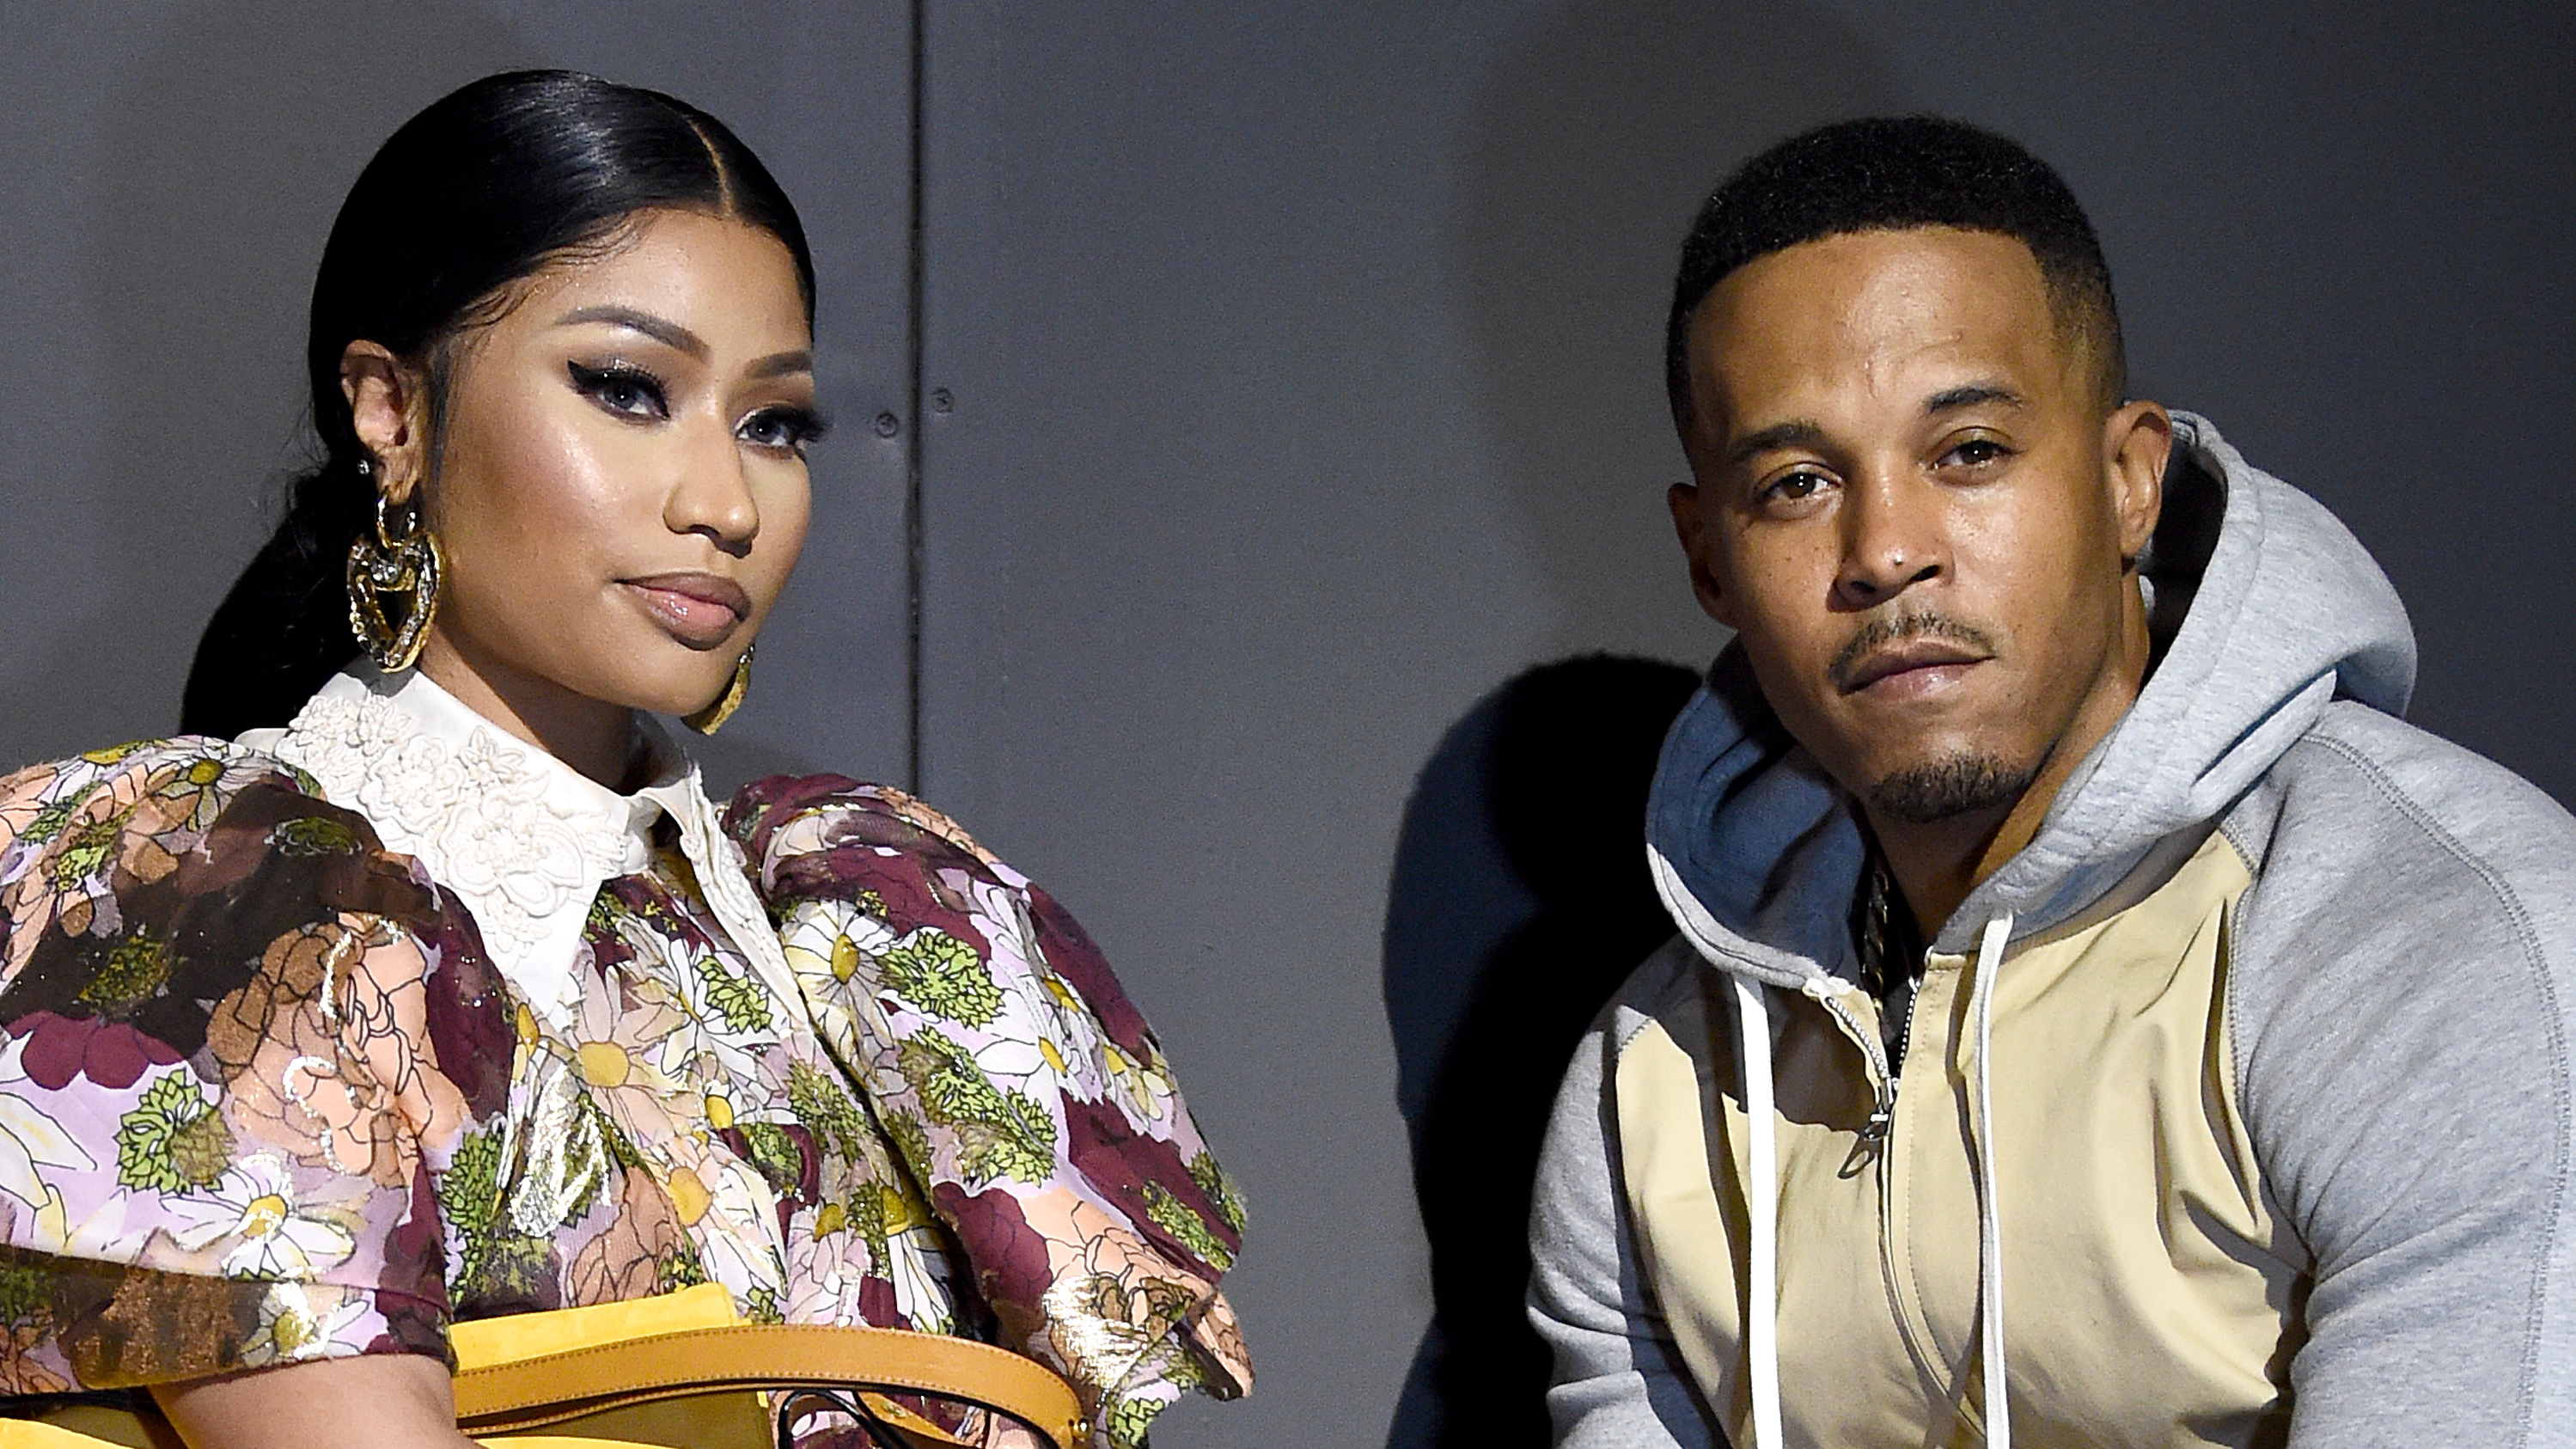 Nicki Minaj's husband's alleged rape victim speaks out in first TV interview: 'I'm tired of being afraid' – Fox News